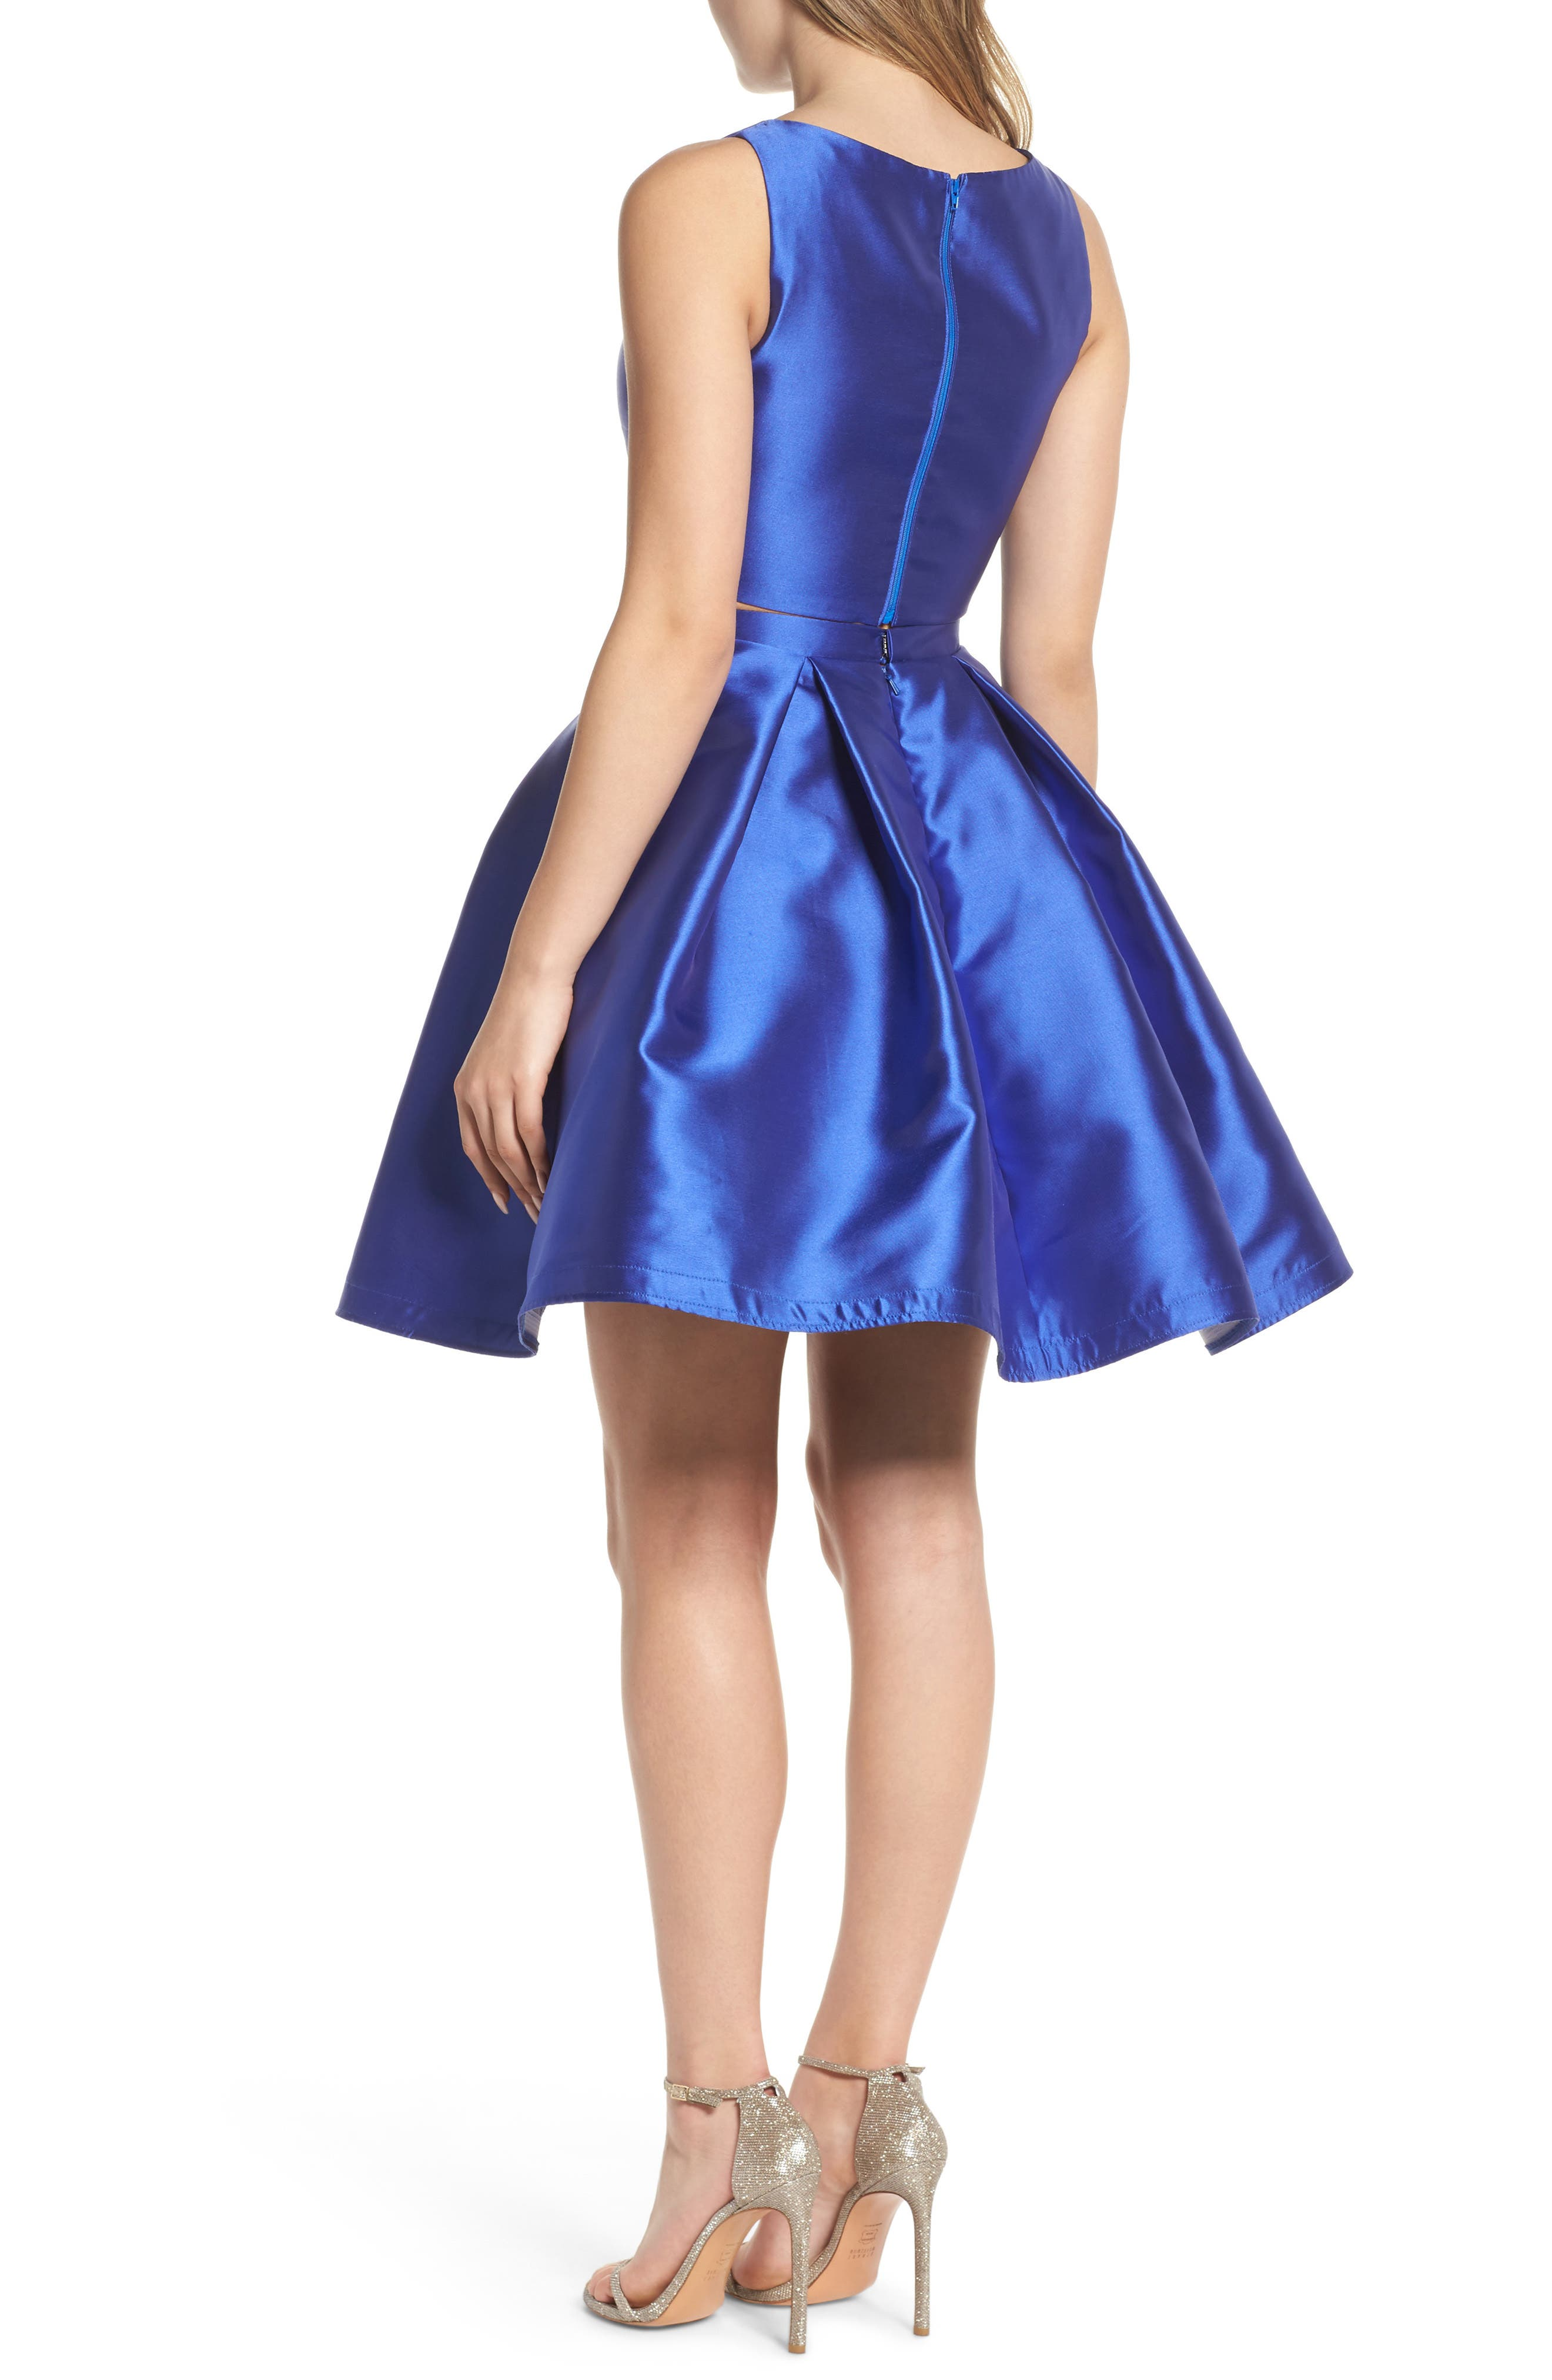 Skater Skirt Two-Piece Dress,                             Alternate thumbnail 2, color,                             Sapphire